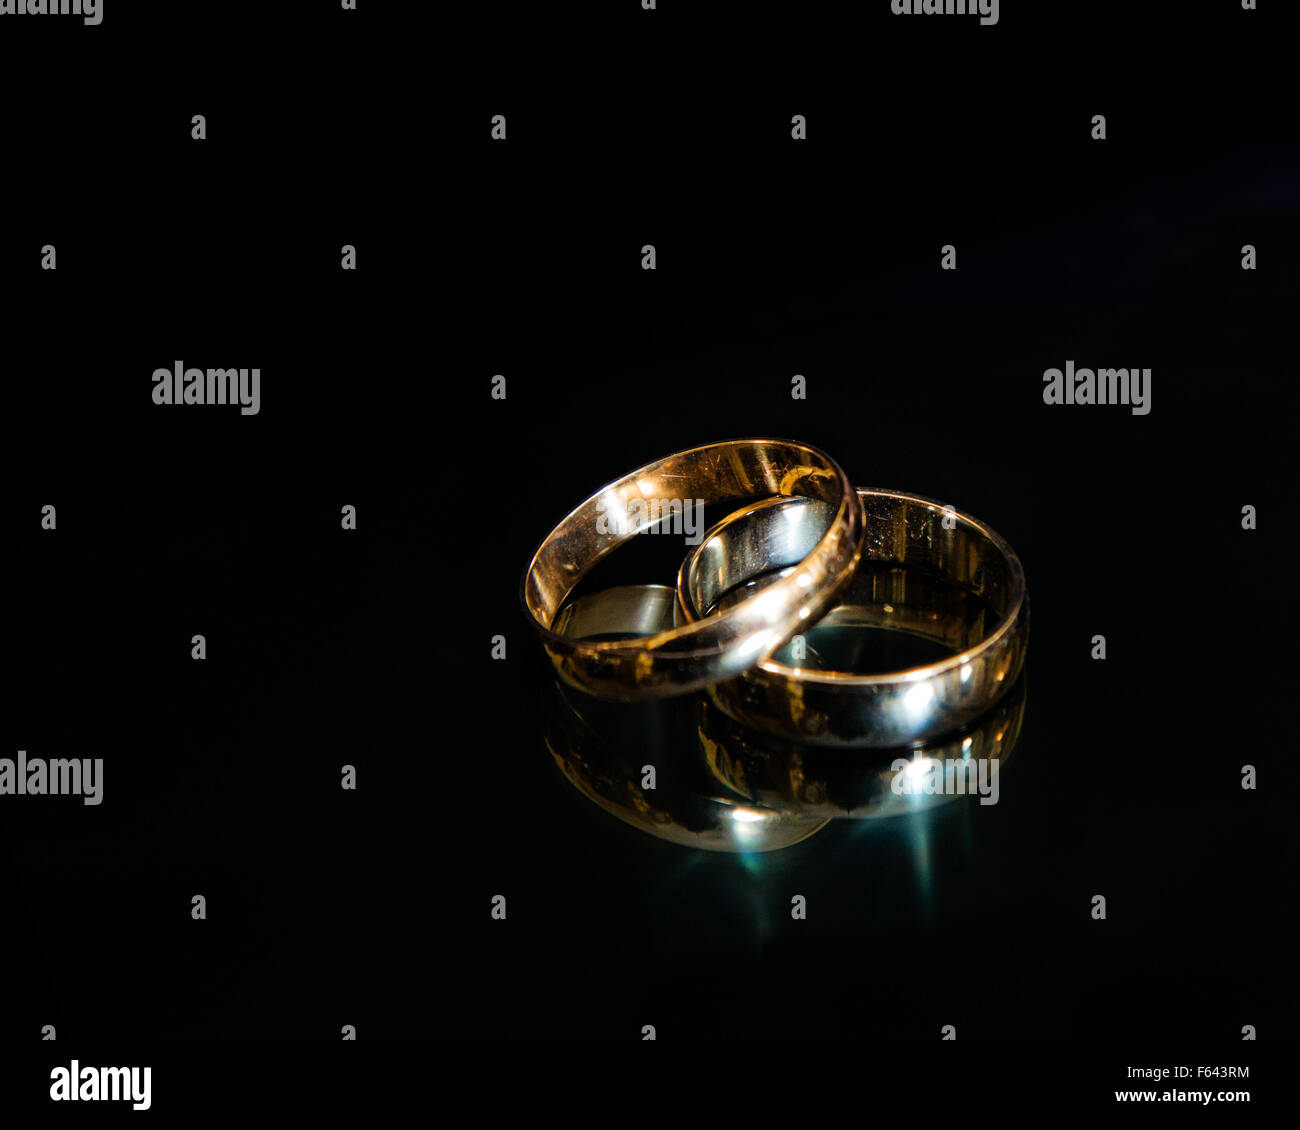 gay wedding rings gay mens wedding rings Two men s wedding bands on a reflective black background Stock Image